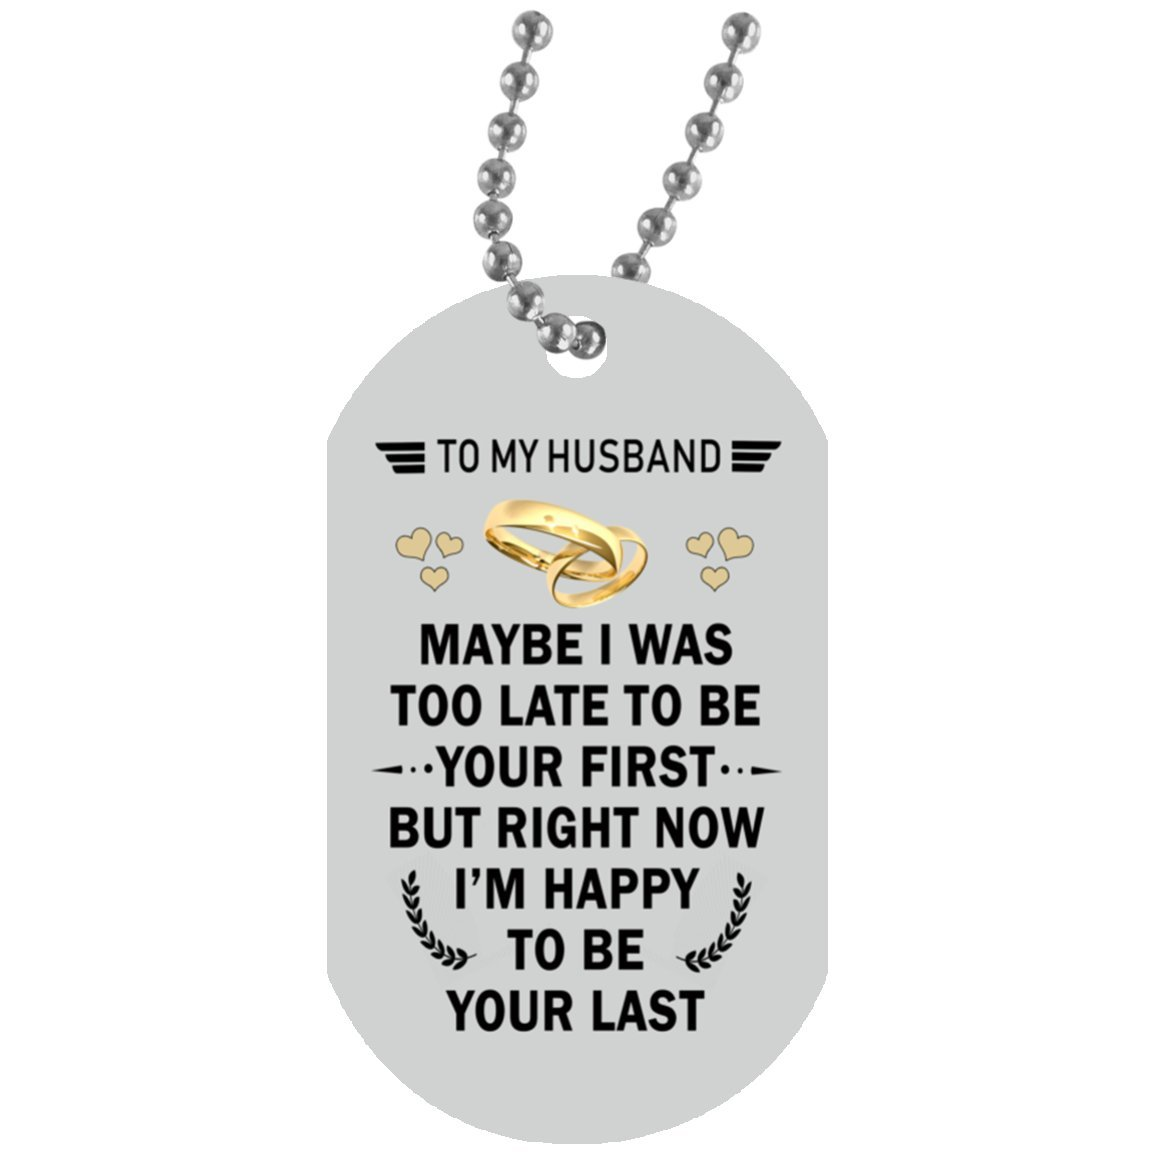 Wife and Husband Dog Tag necklace - my Husband angel necklace from Wife - Great Gift for Your Husband, On Wedding day, 30 inch silver beaded chain included with purchase